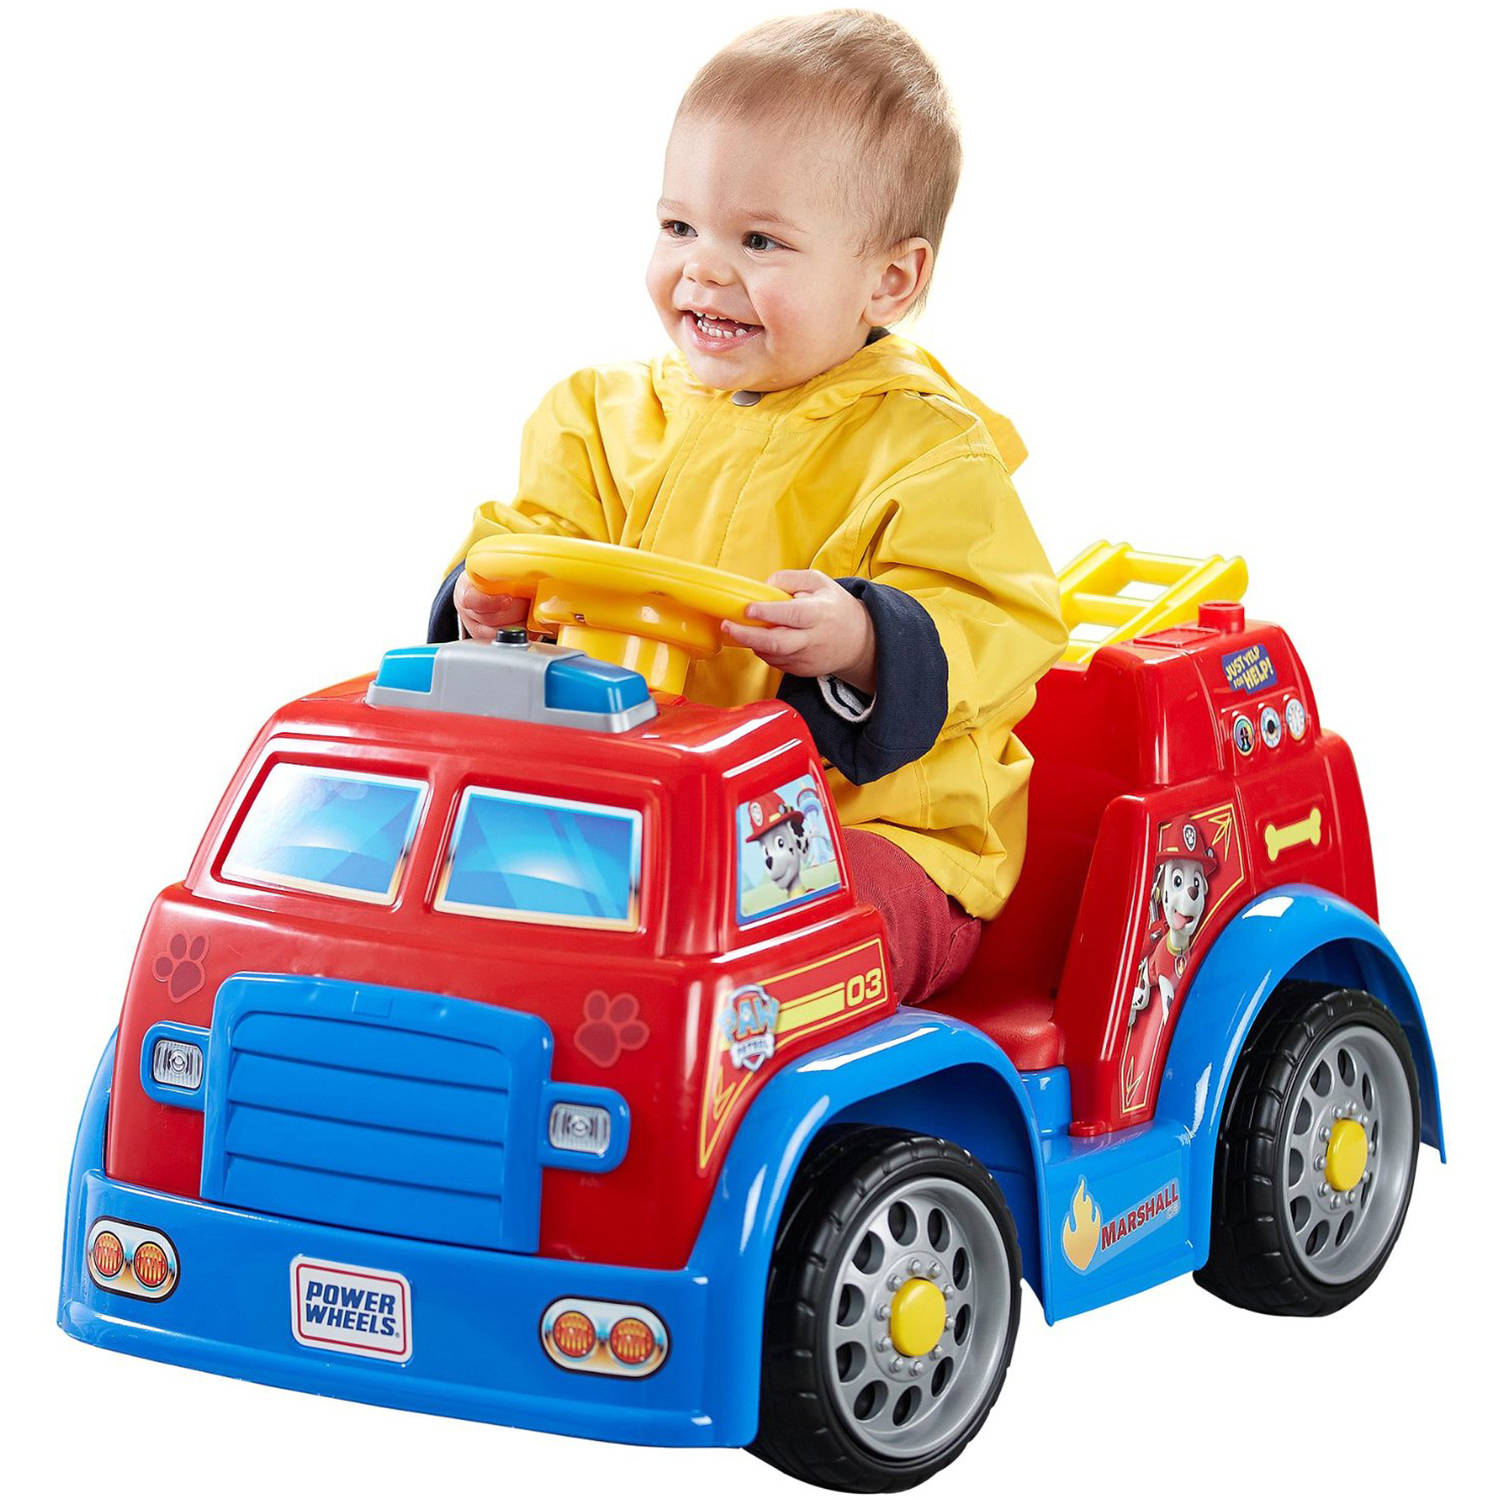 Power Wheels PAW Patrol Fire Truck Kids Ride Toy Car Ideal Gift